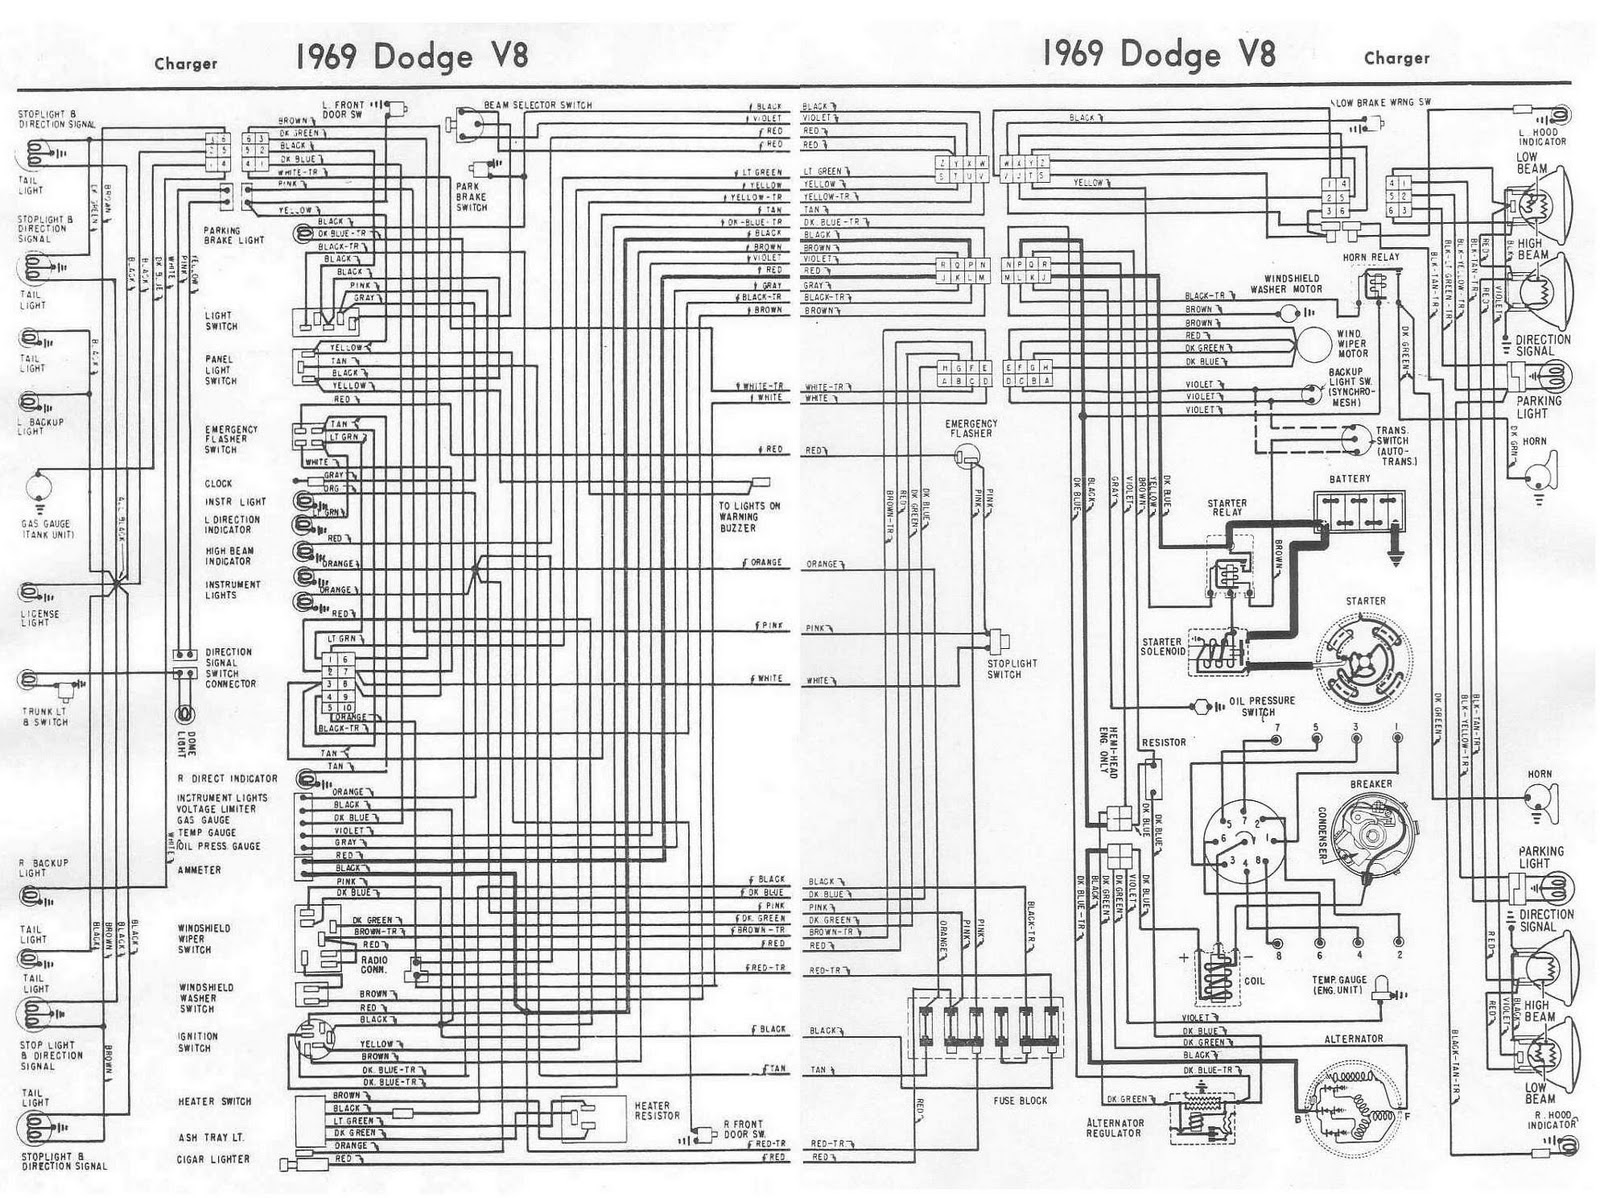 dodge challenger wire diagram dodge charger wiring diagram dodge wiring diagrams online 1969 dodge charger v8 complete wiring diagram 1972 dodge challenger wiring diagram